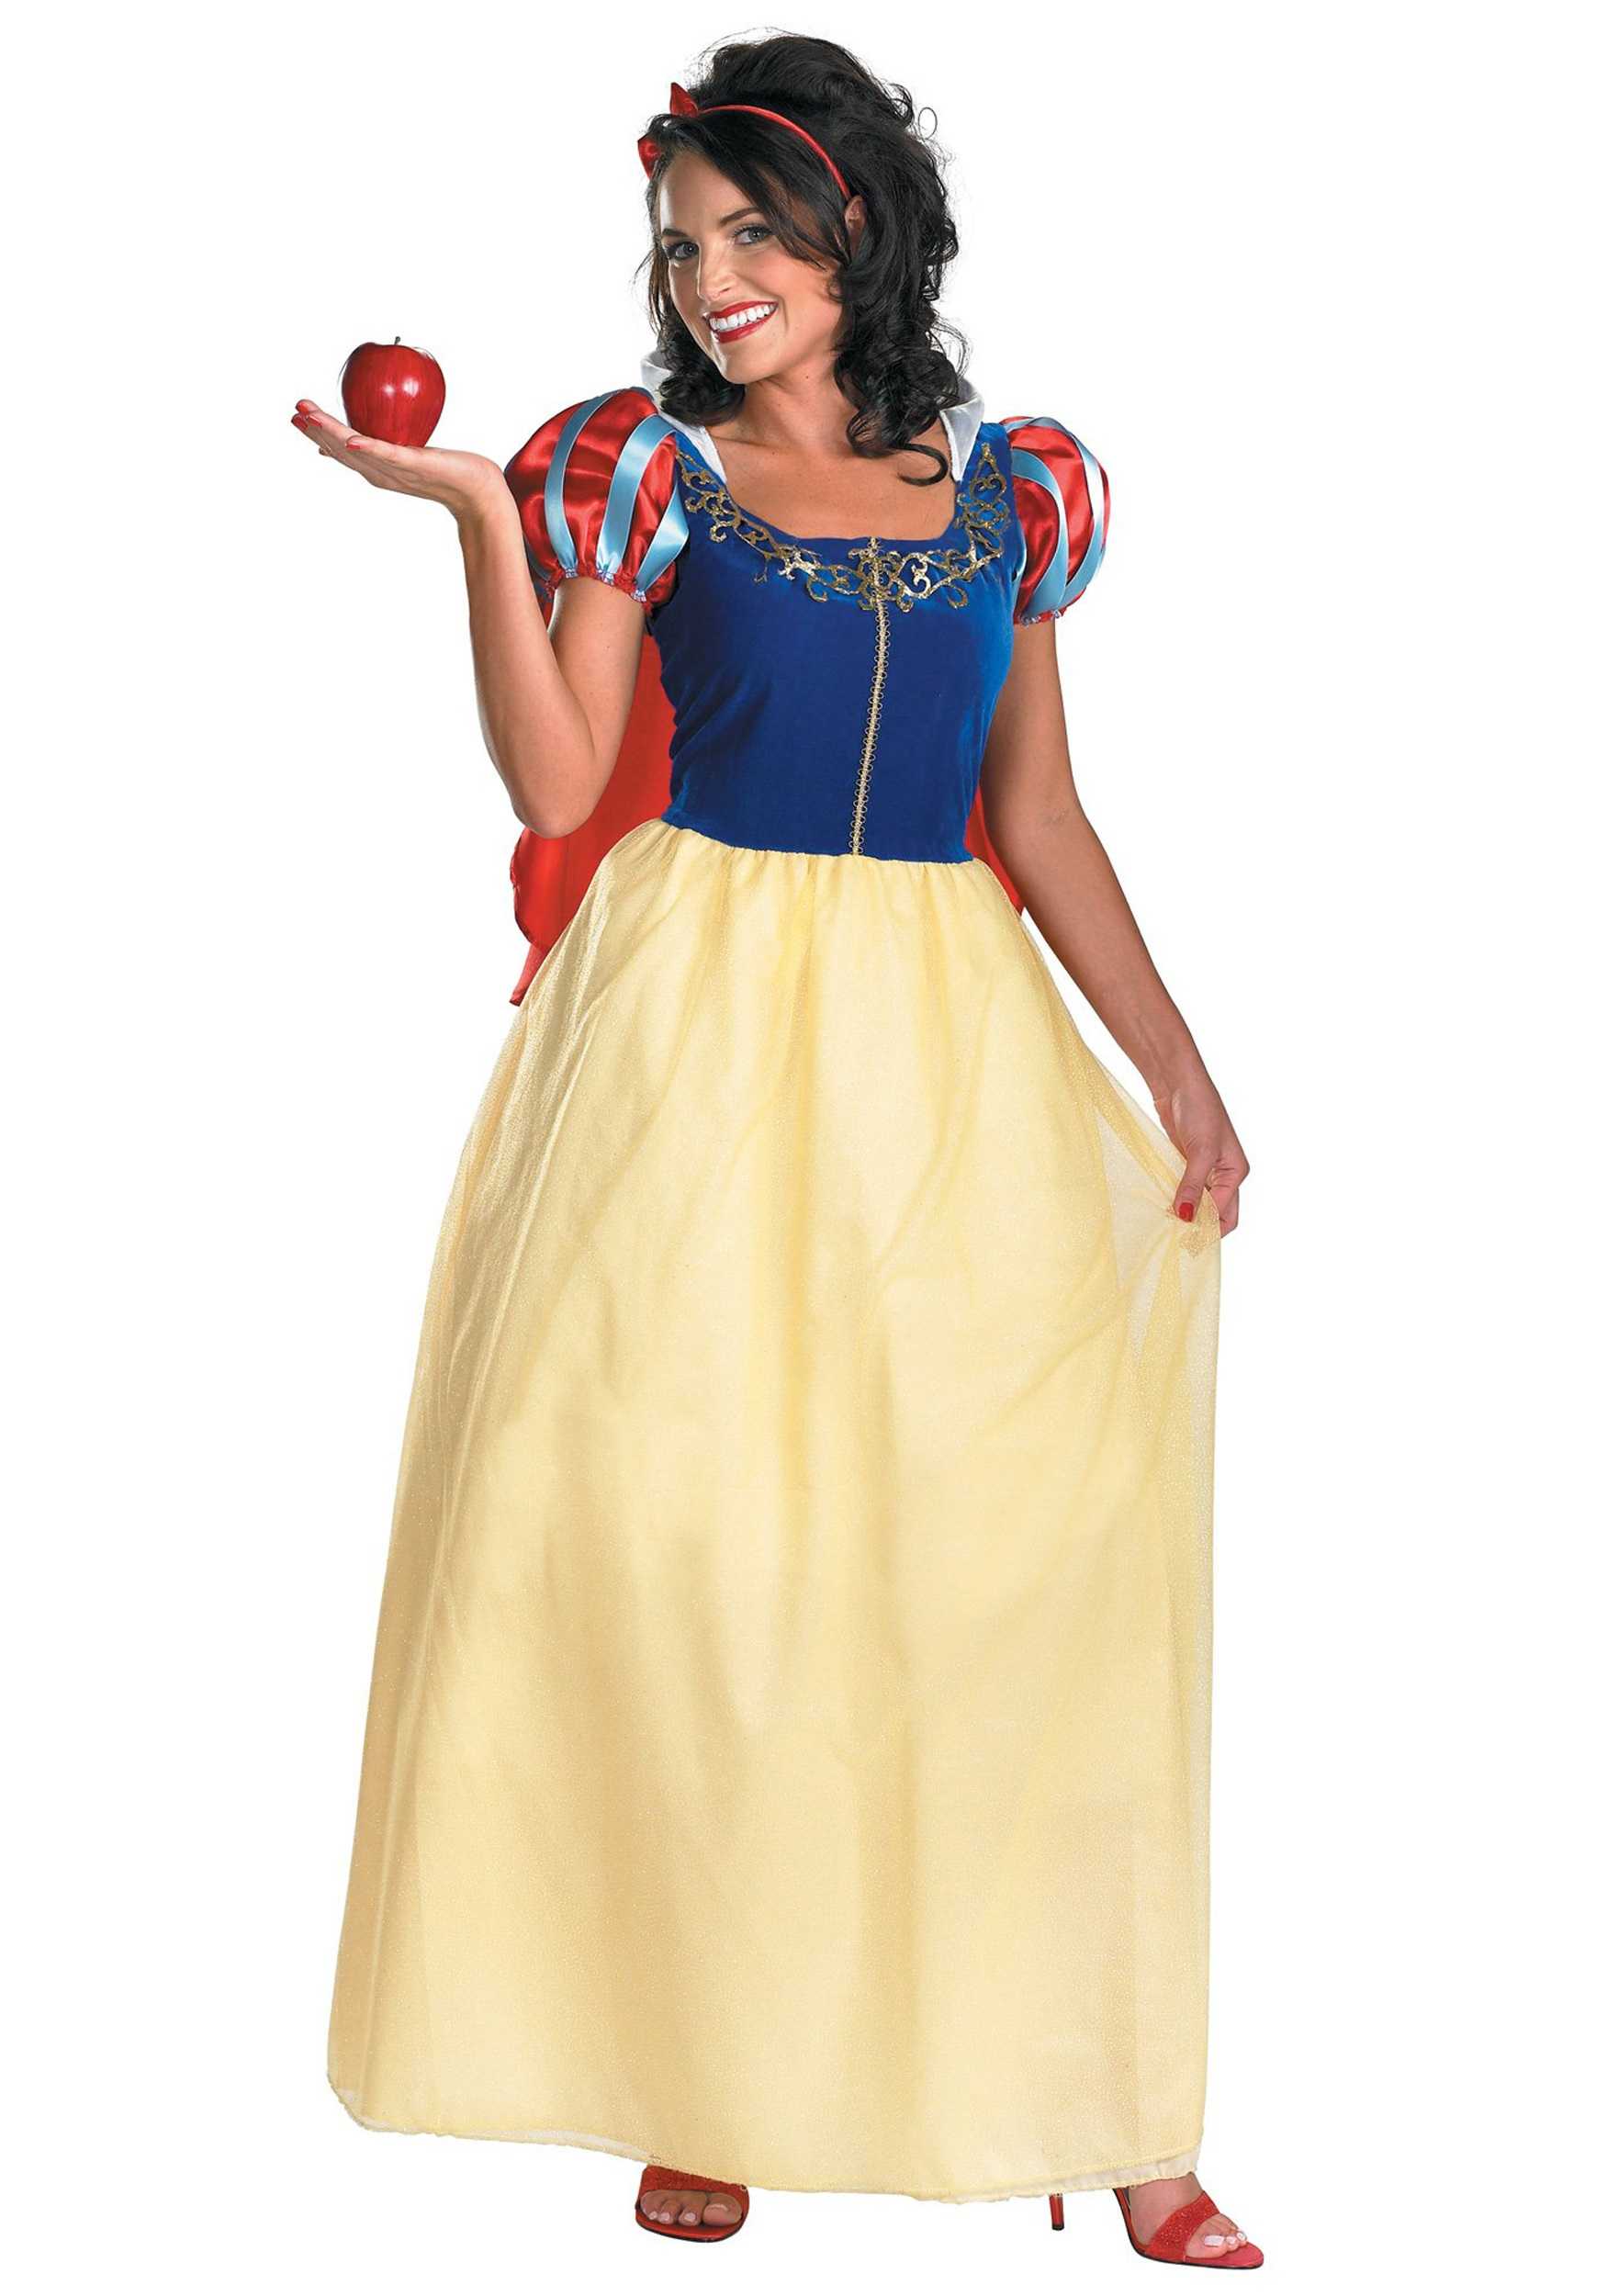 Disney Costume Ideas Disney Princess Costumes Adult And Child Disney Princess